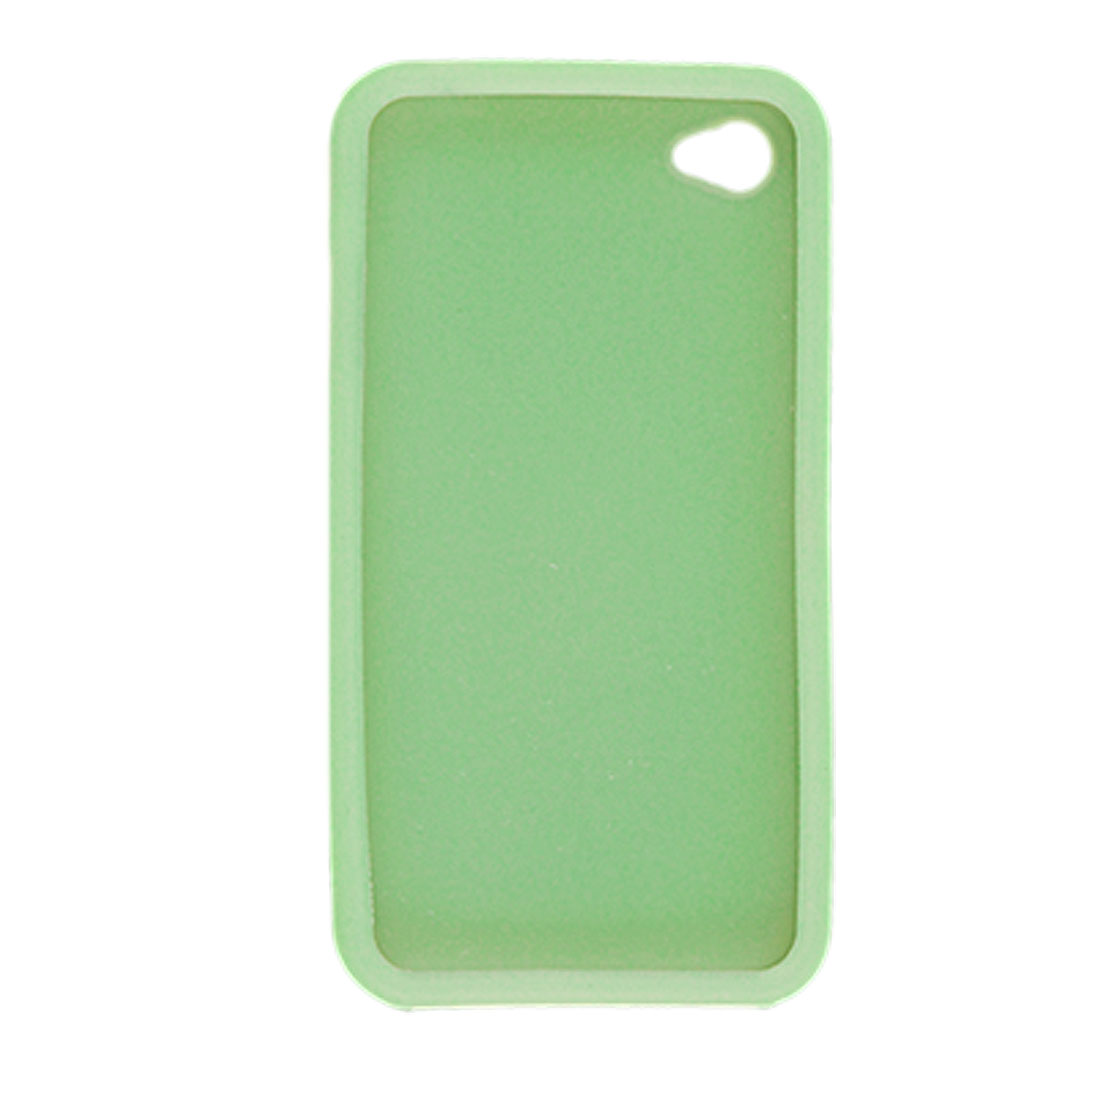 Light Green Soft Silicone Cover Case + Screen Guard for Apple iPhone 4 4G